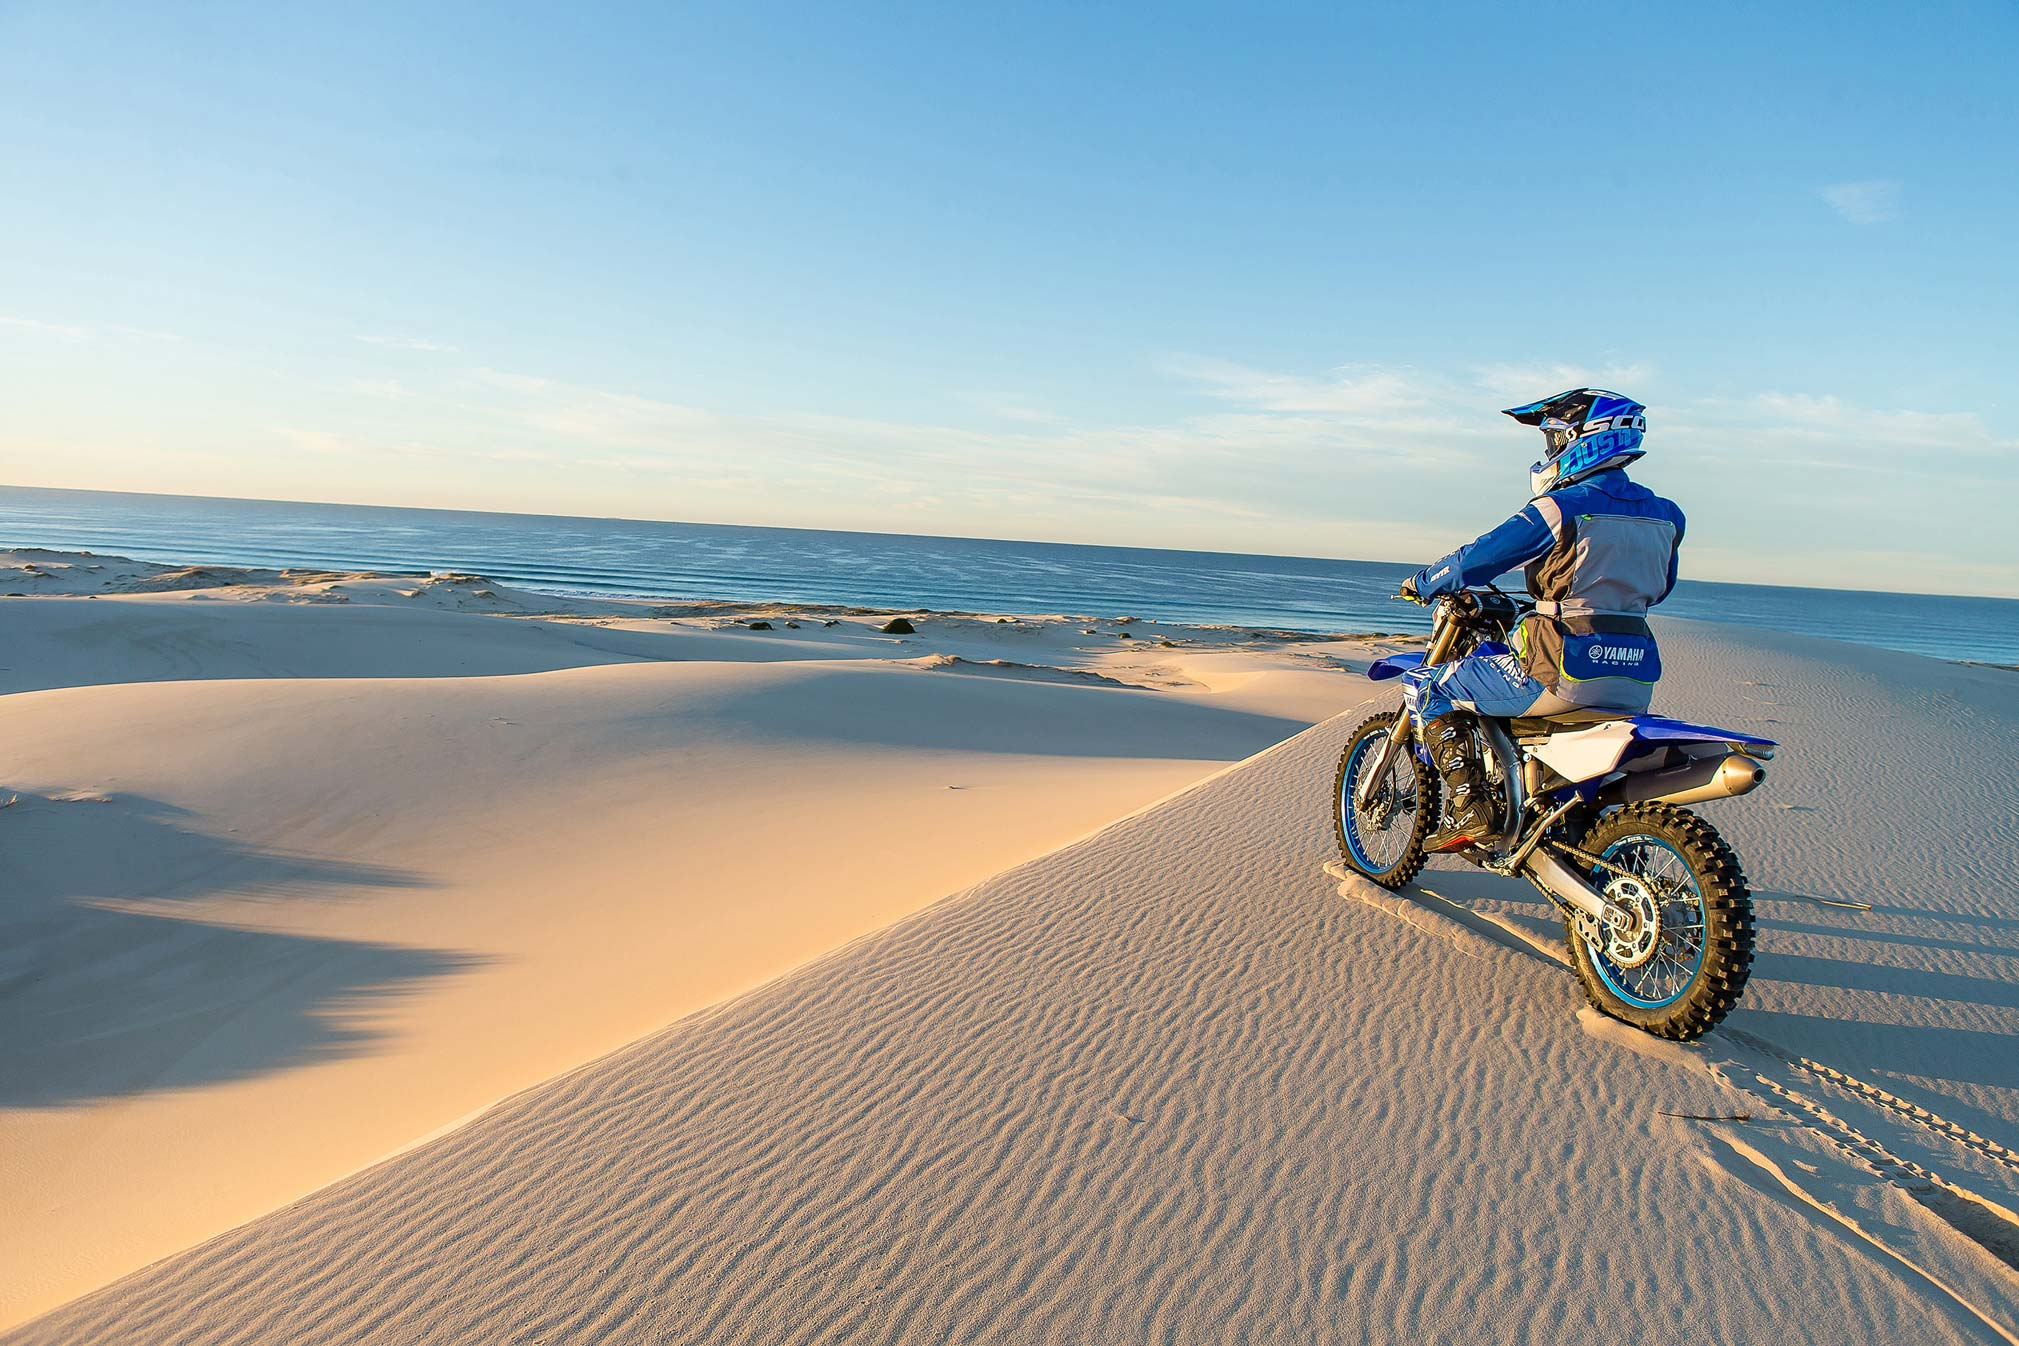 2019 Yamaha Wr450f Guide Totalmotorcycle